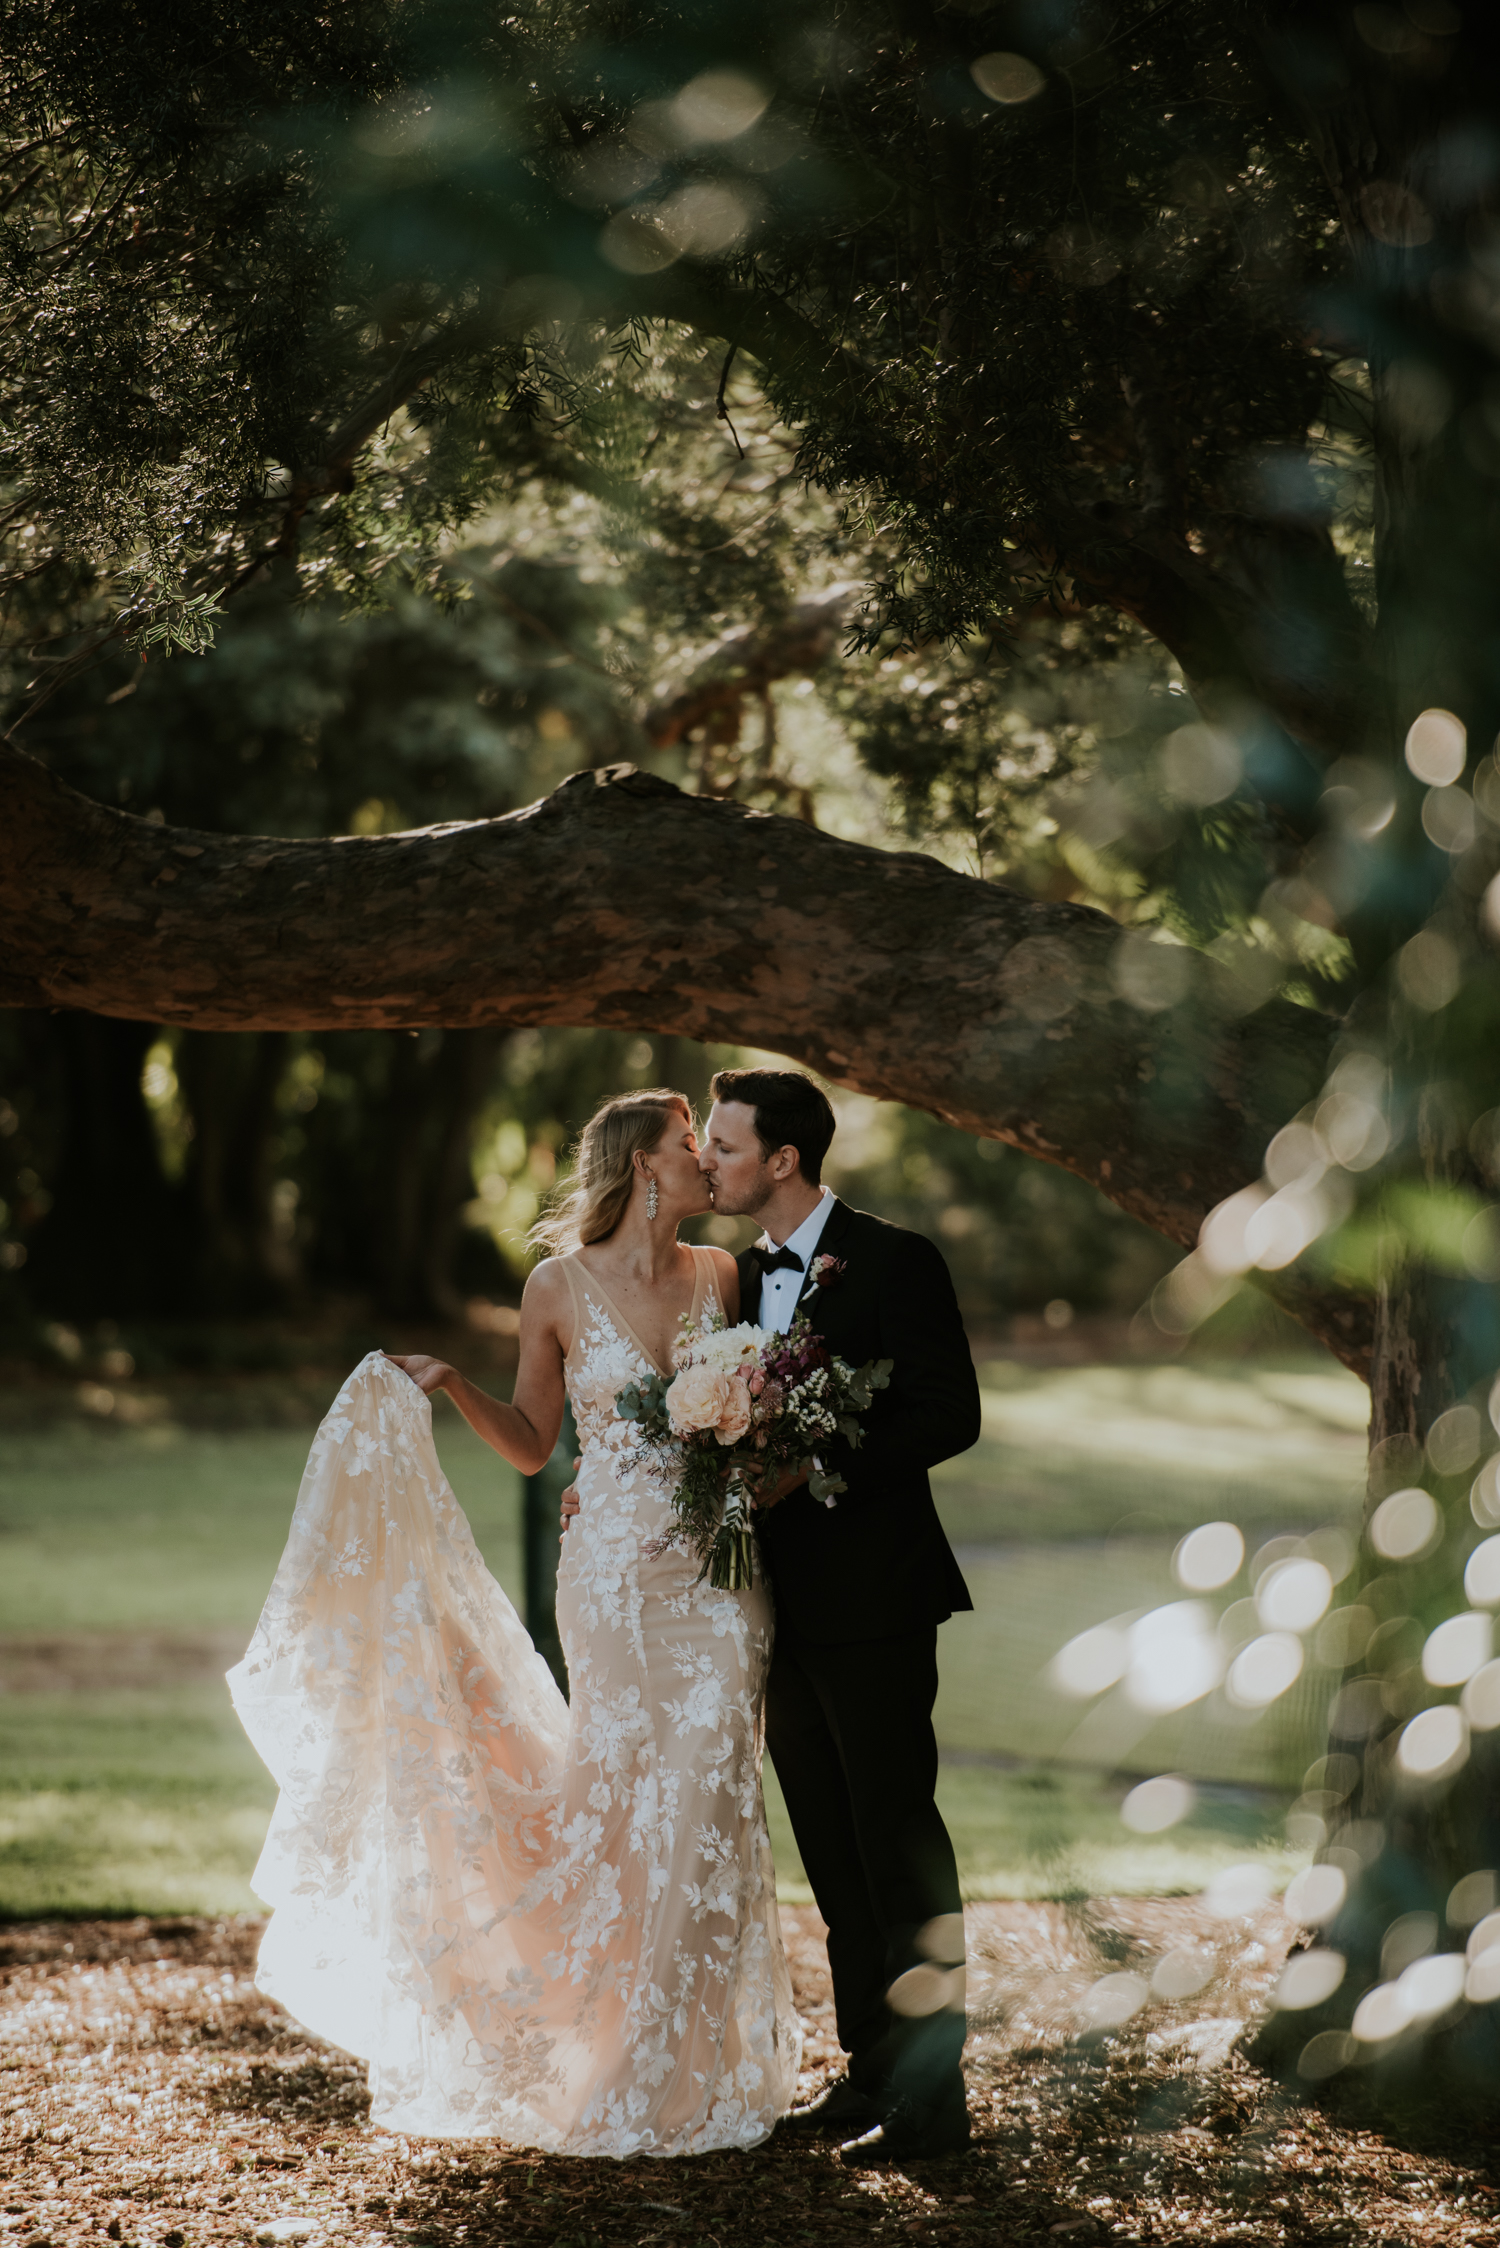 Brisbane Wedding Photographer | Engagement-Elopement Photography | Factory51-City Botantic Gardens Wedding-45.jpg